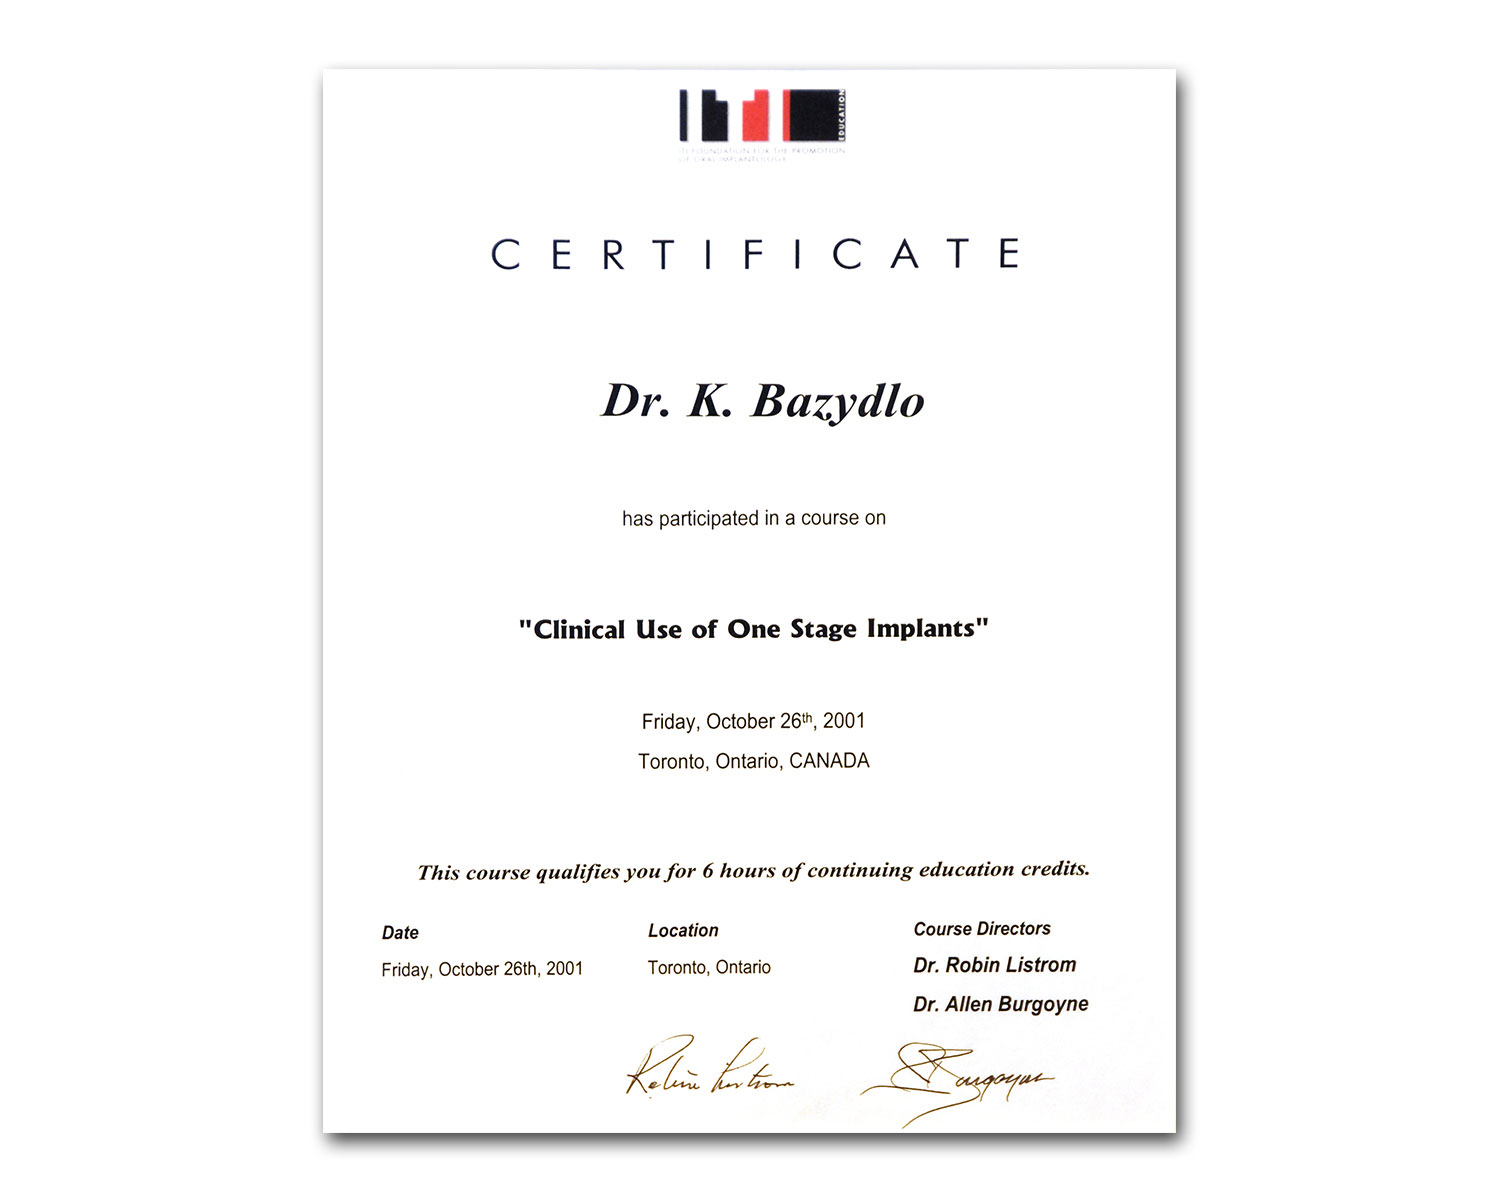 Foundation for Implantology Certificate